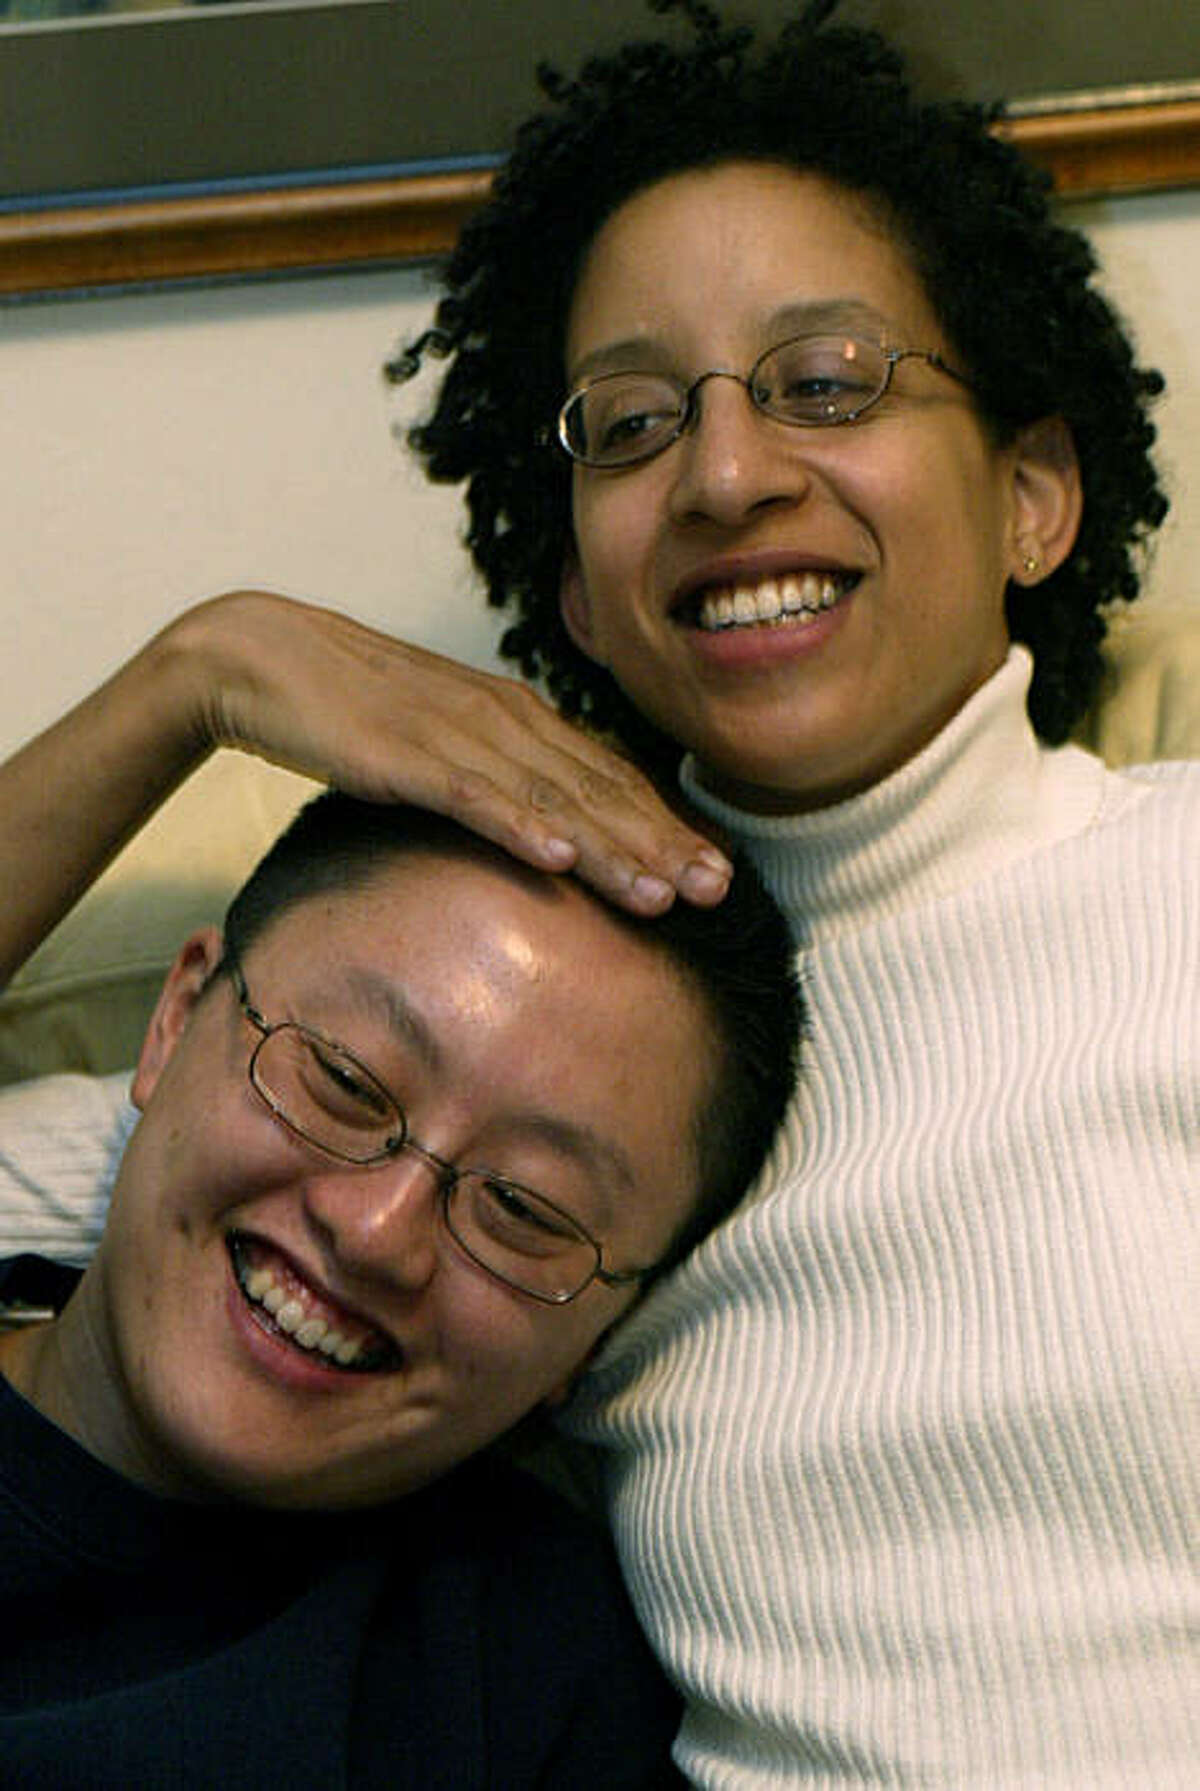 Amy Andre (right) a bi-sexual in a relationship with a strictly lesbian partner, Cheri Tsai (CQ), relax and watch television in their Chinatown apartment.